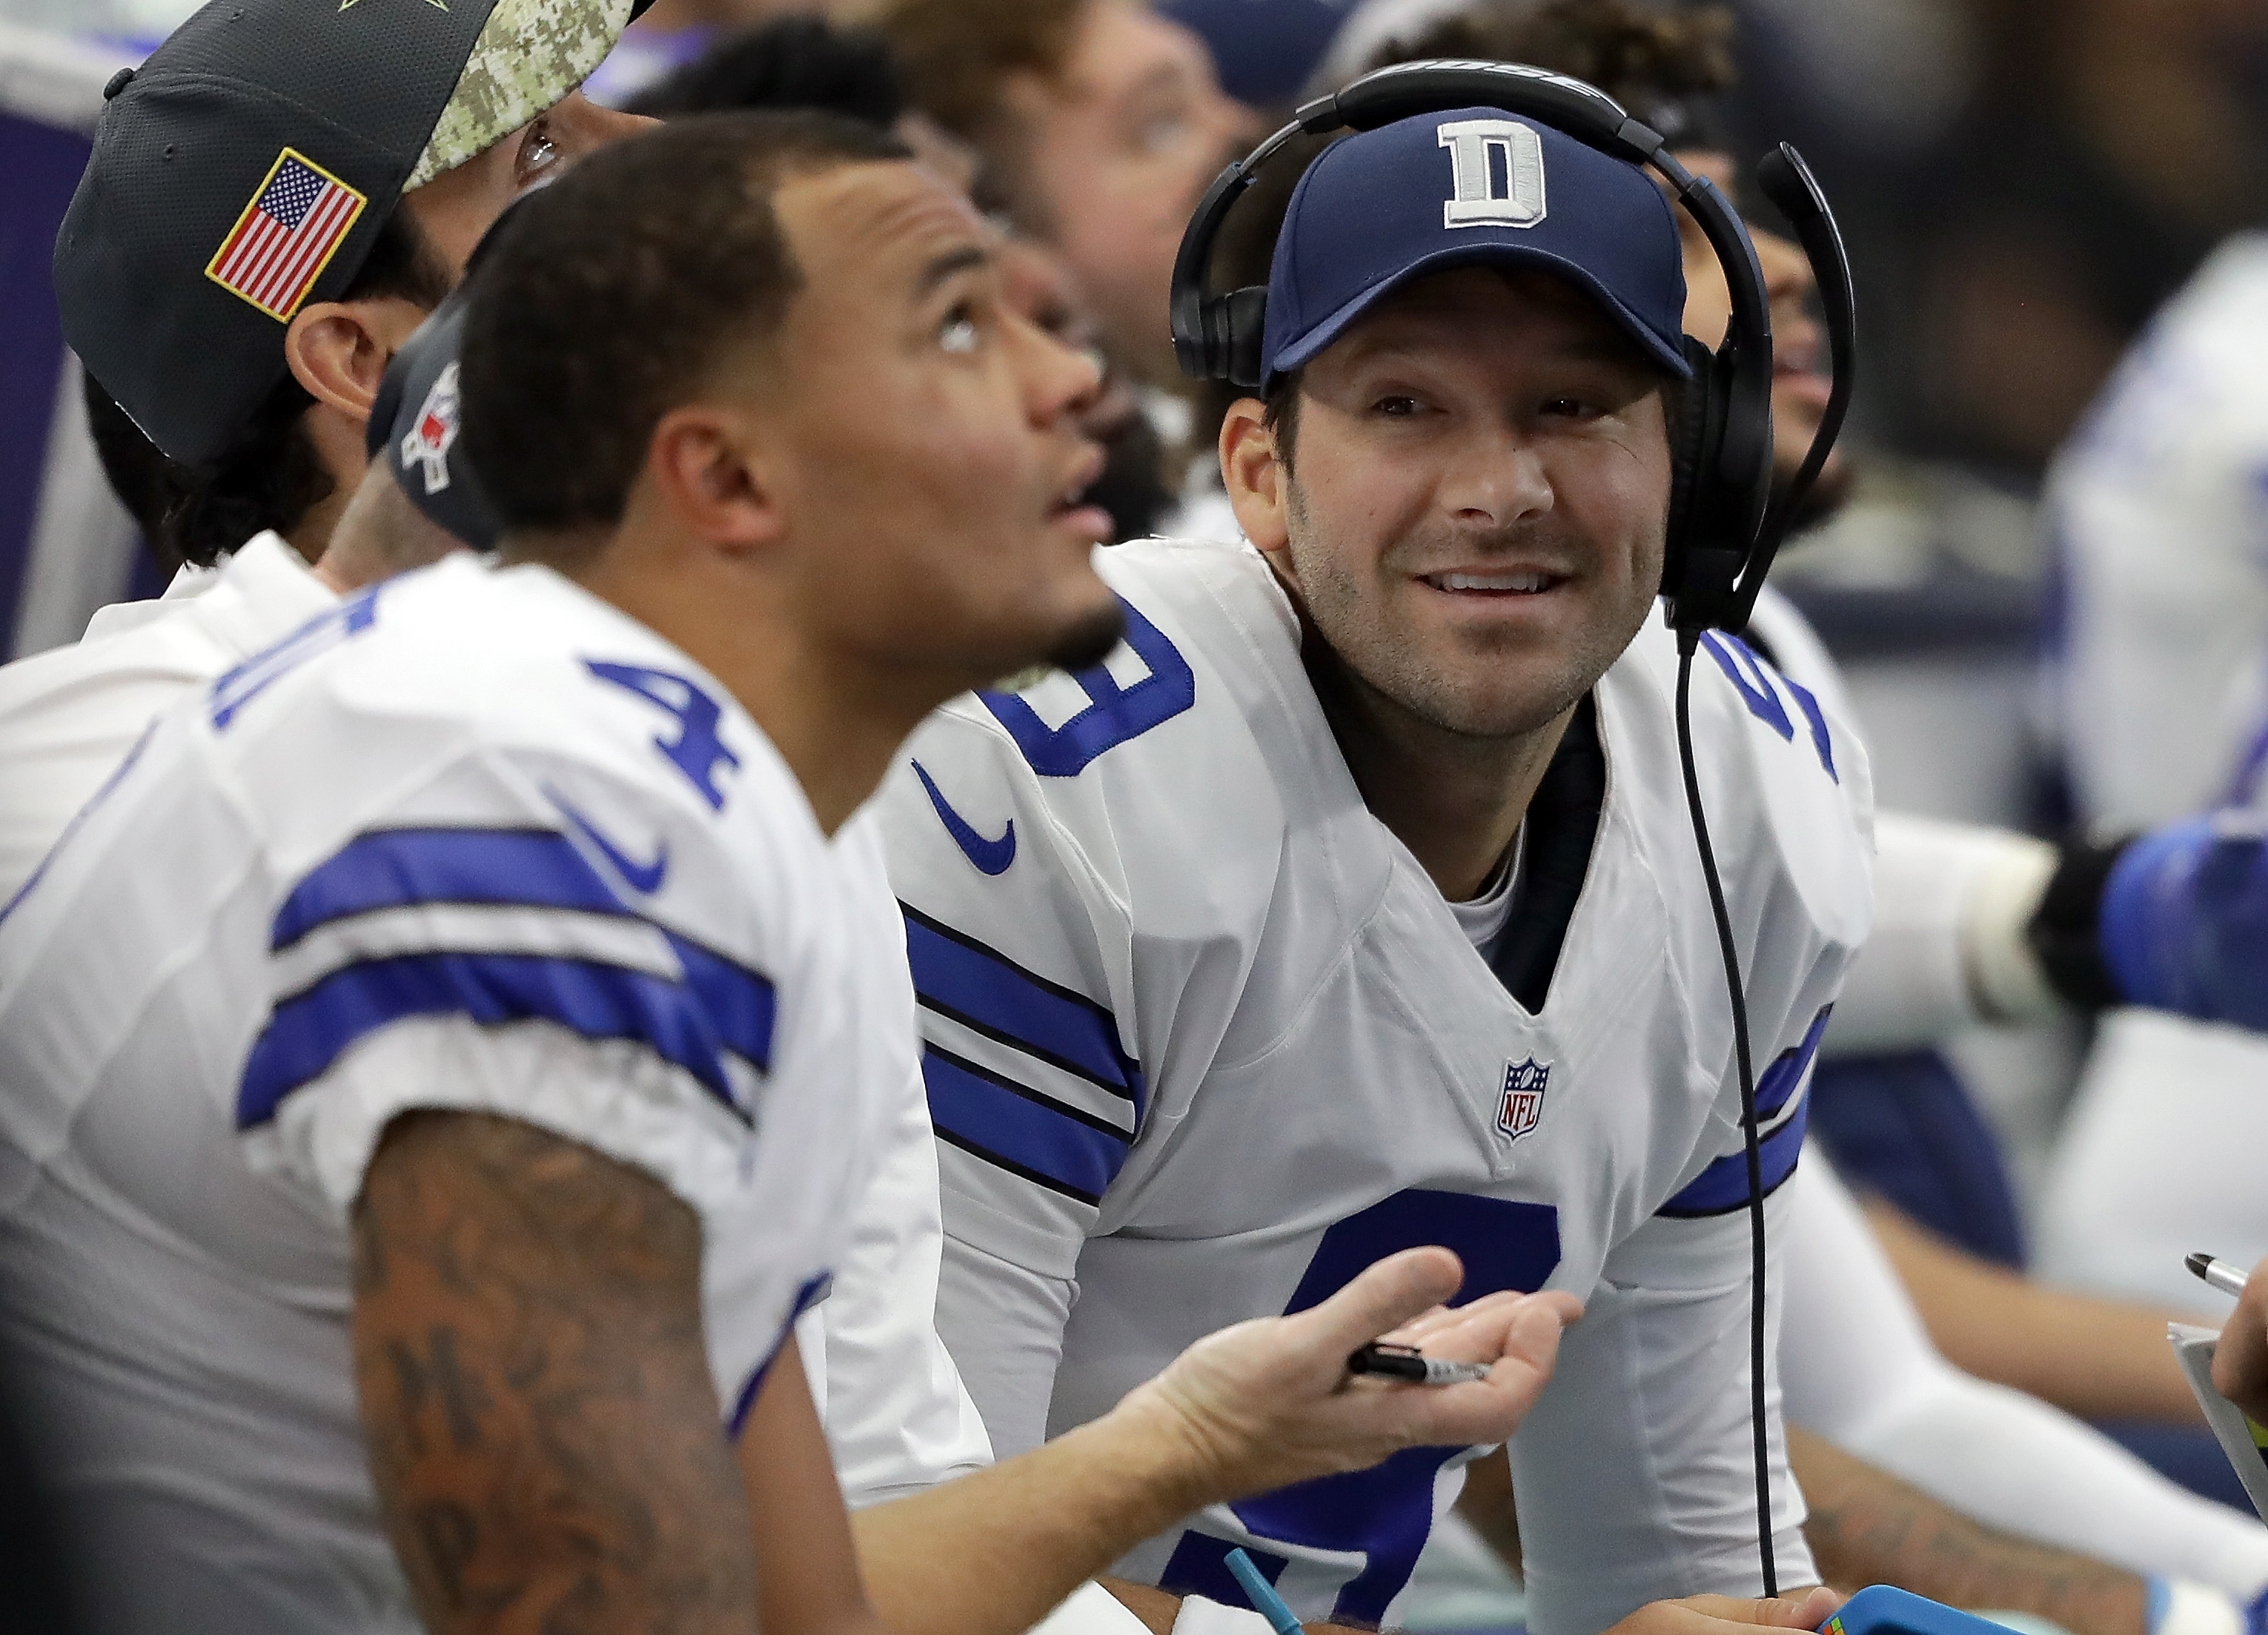 Tony Romo's first TD pass of 2016 season